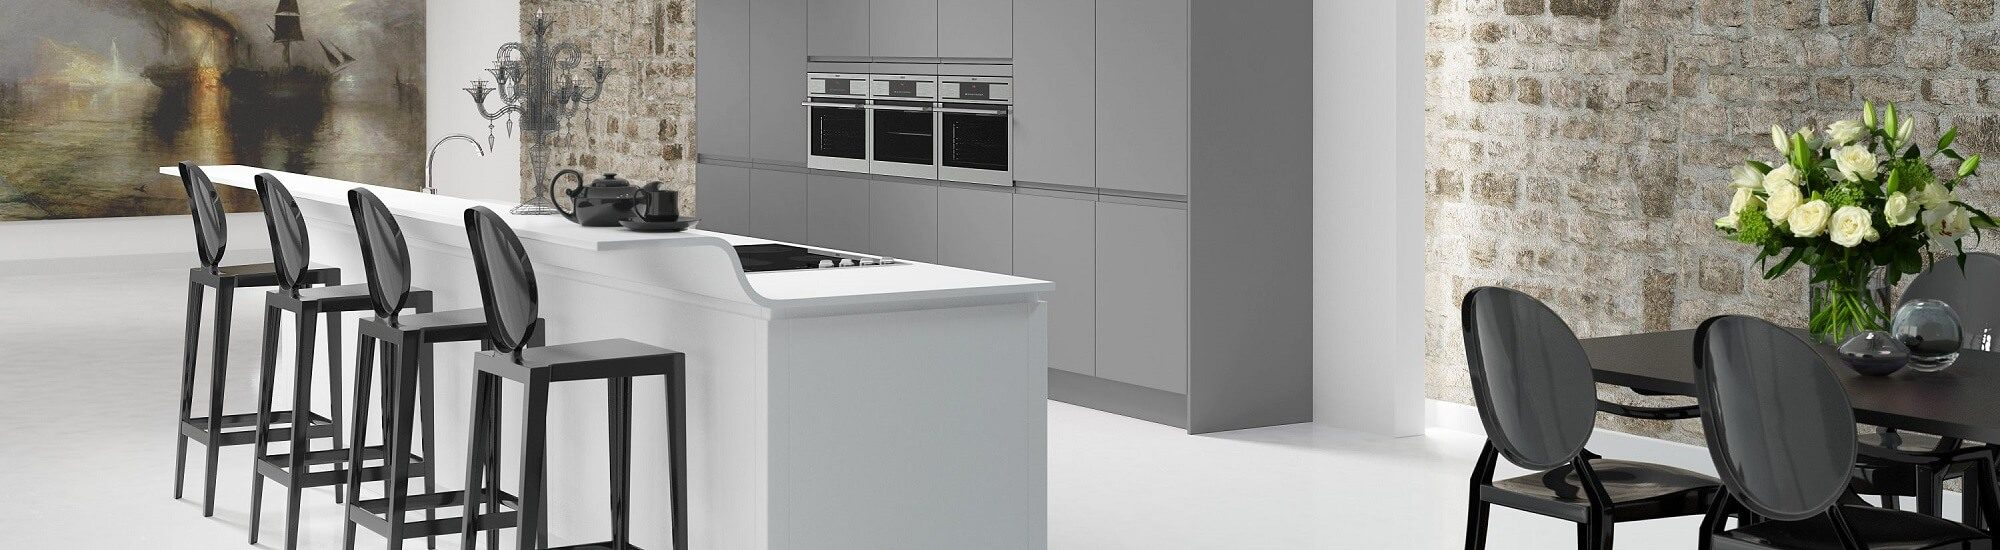 Shaker manor house kitchen in white and grey colour scheme